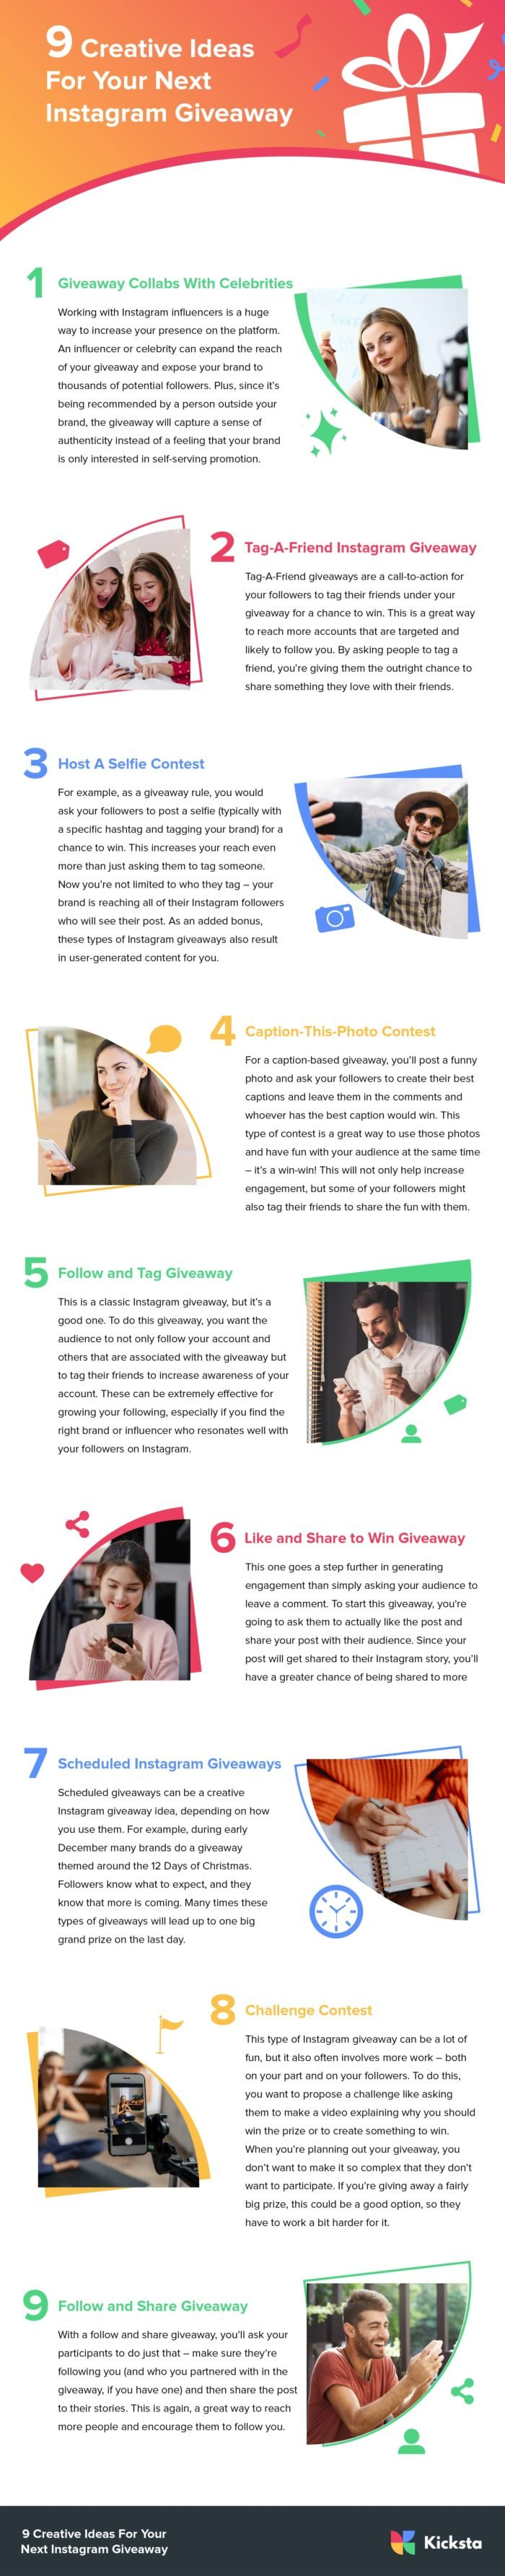 Creative ideas for your next Instagram giveaway infographic